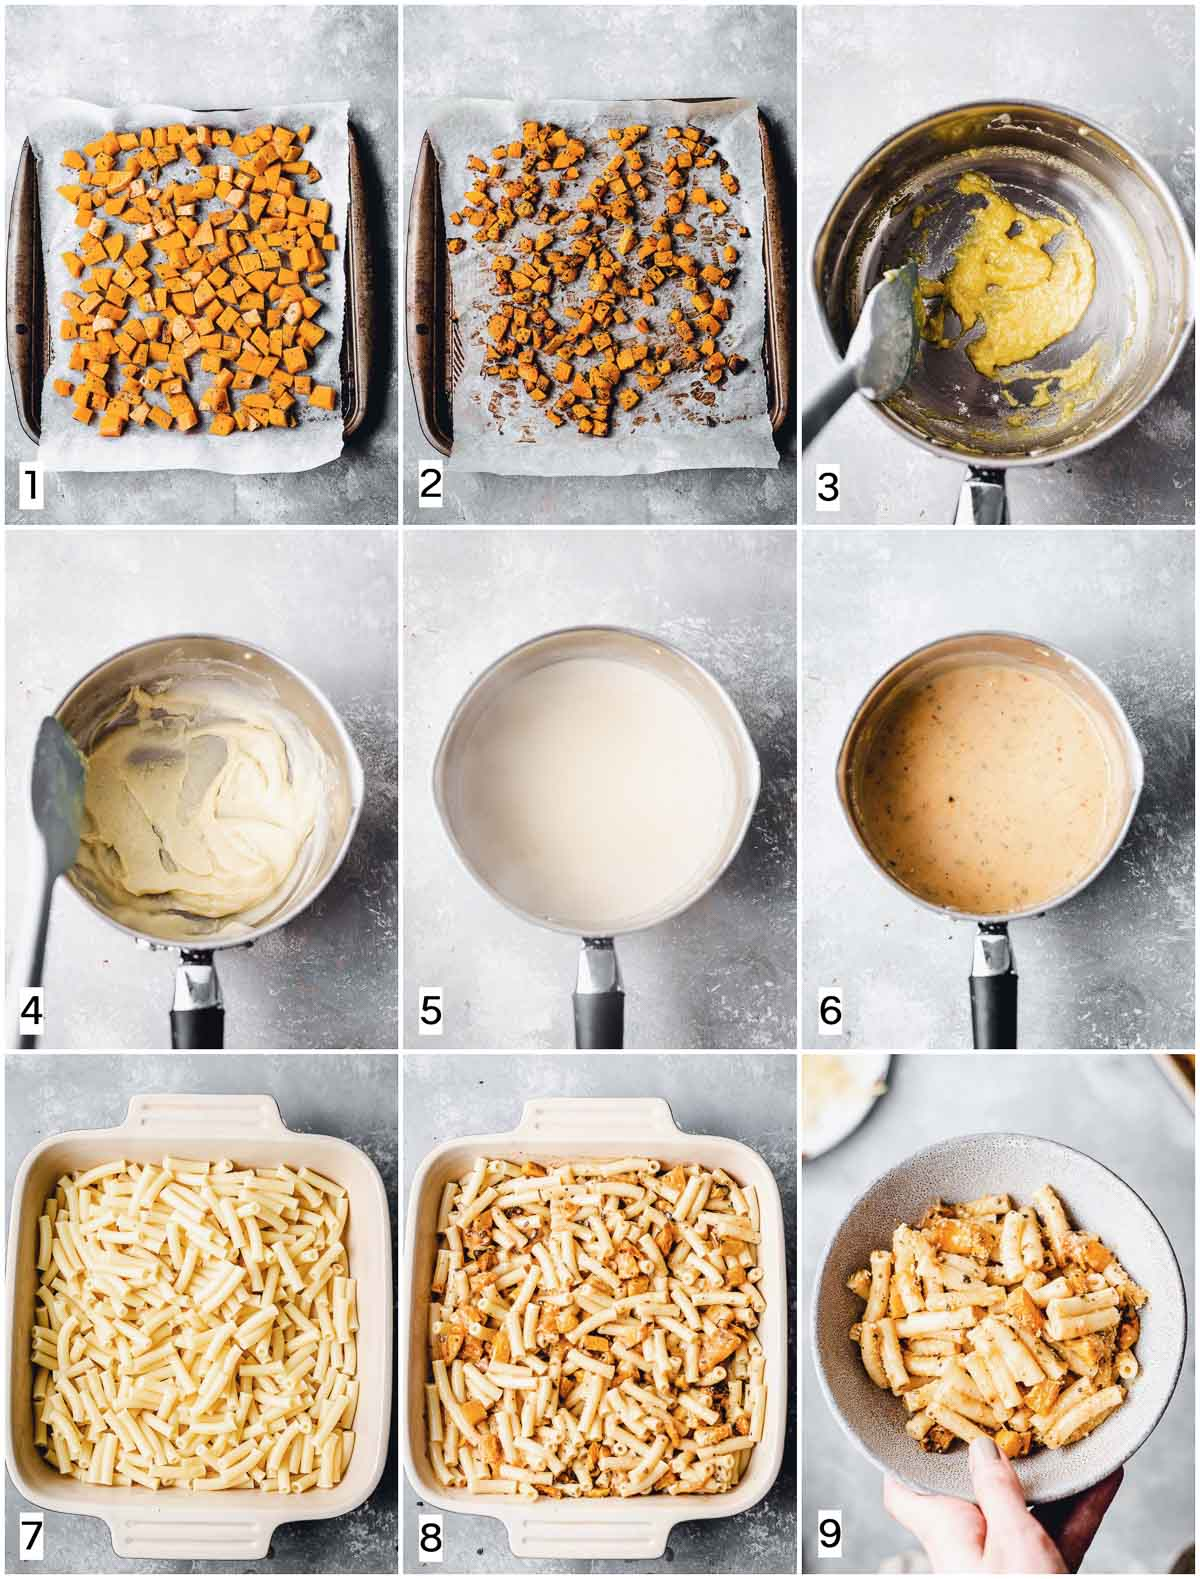 A collage of nine images showing nine steps in making mac and cheese.